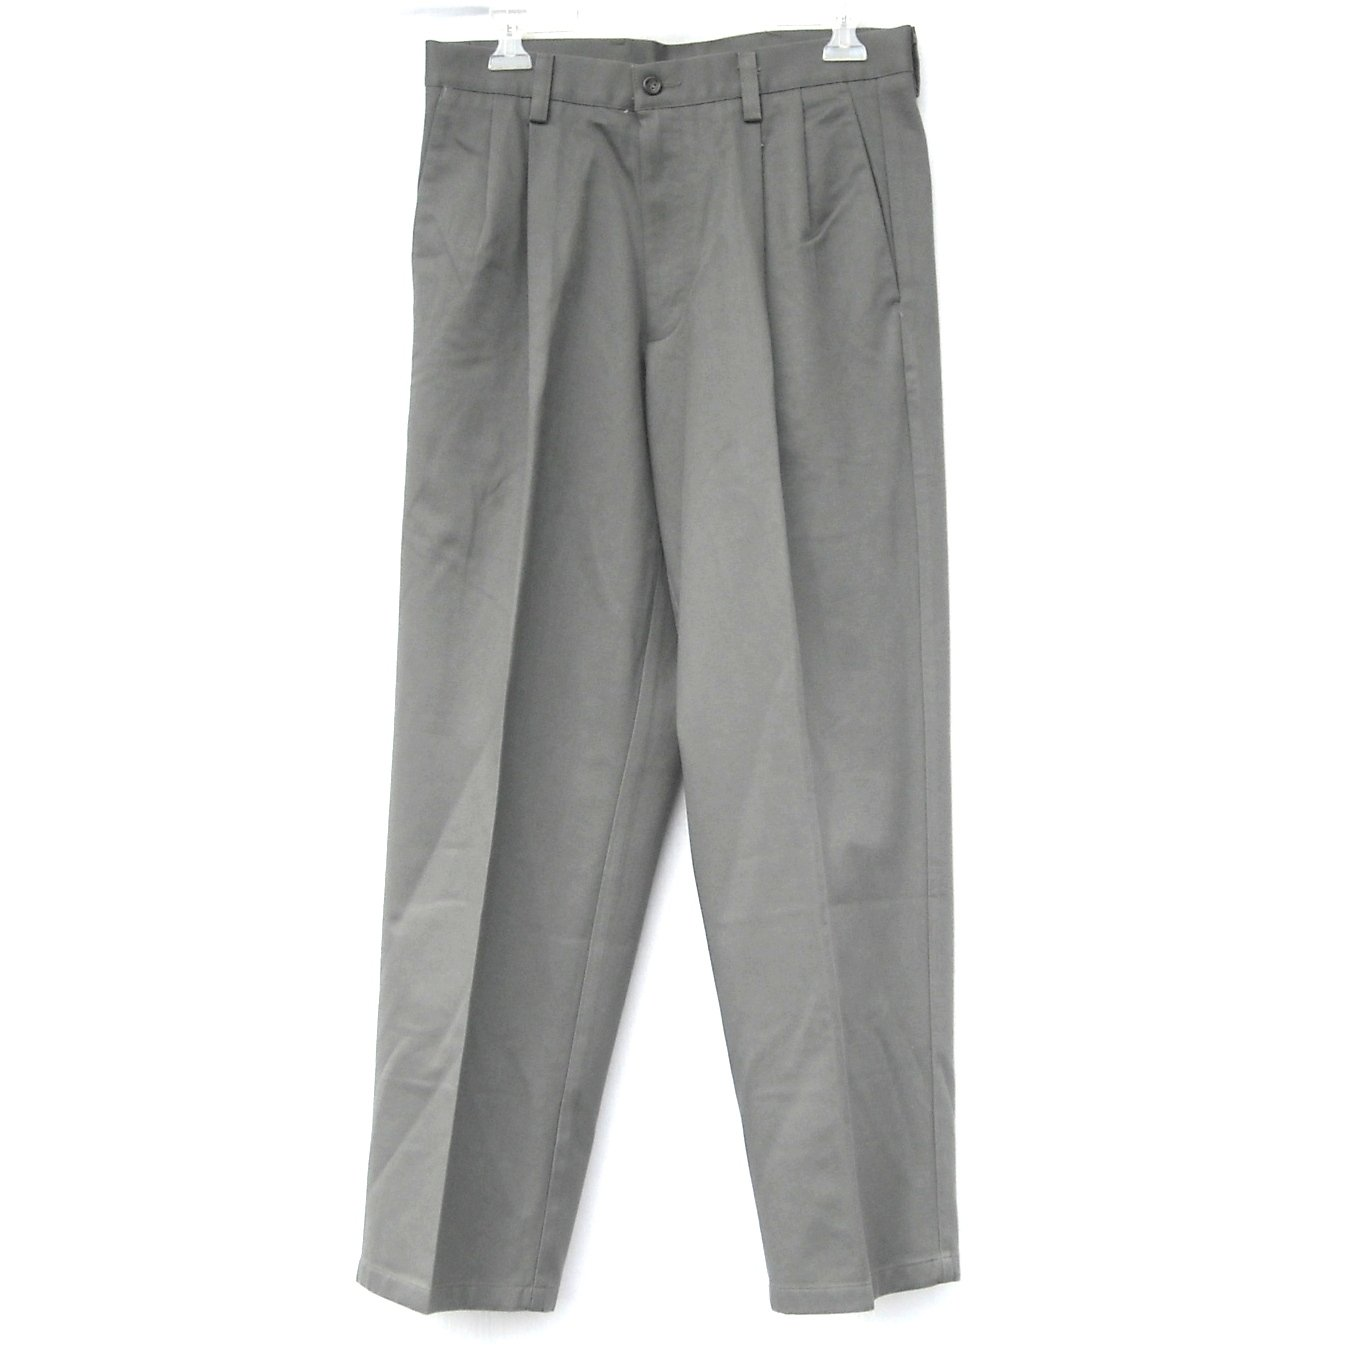 Dockers Classic Fit Gray Pants size 30 X 30